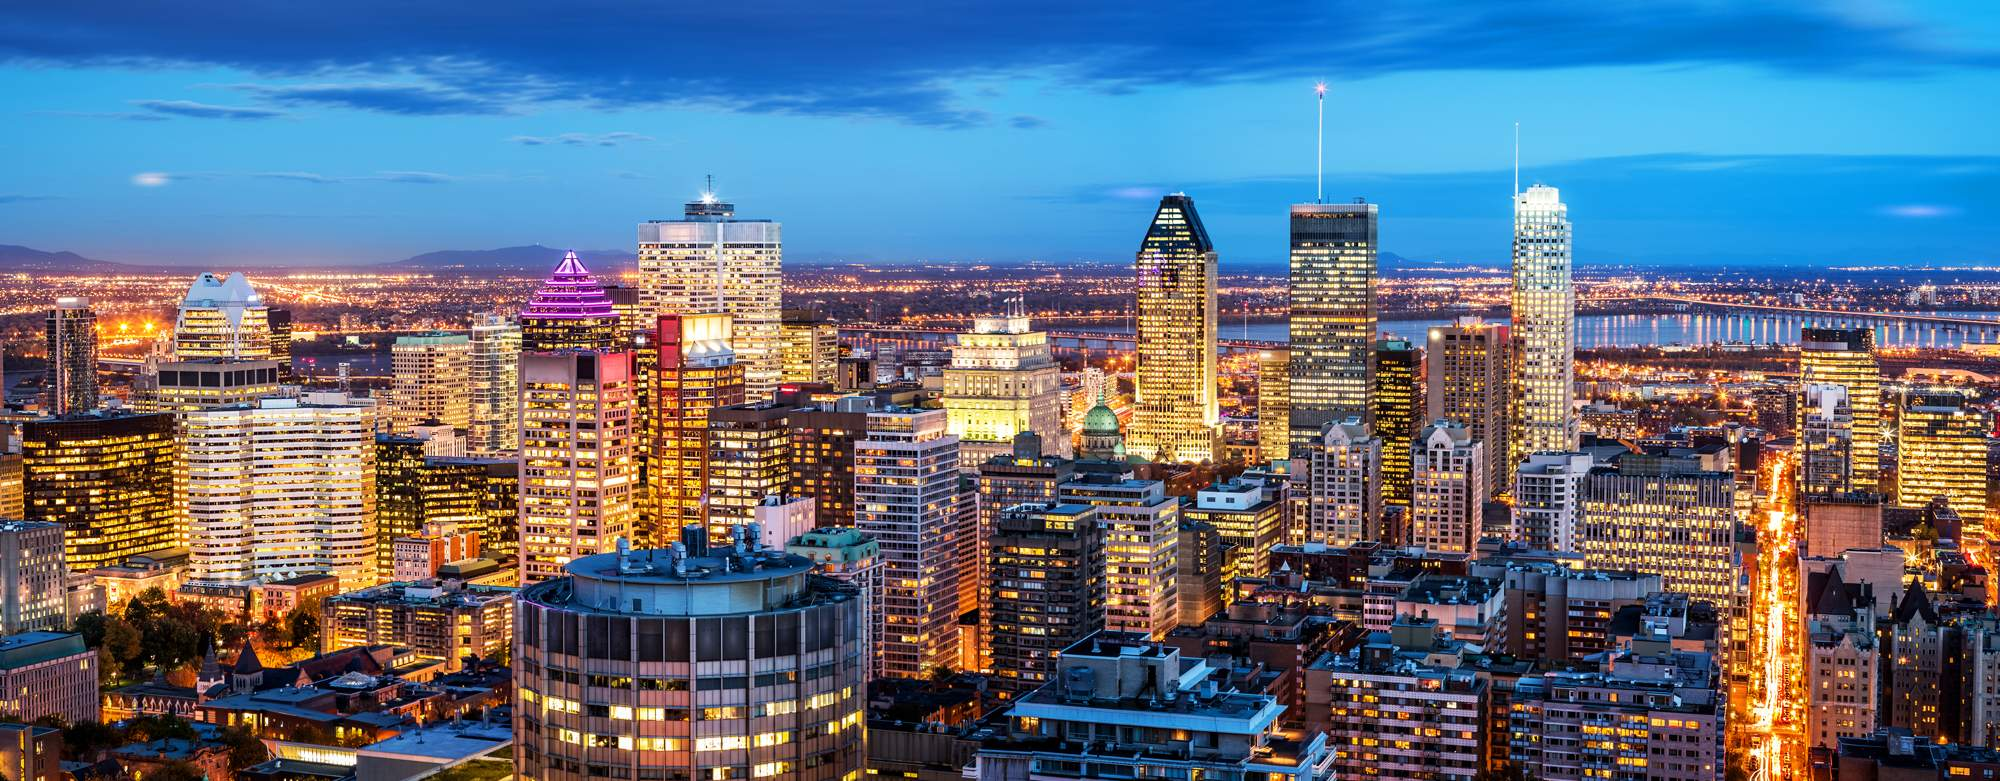 montreal-city-skyline